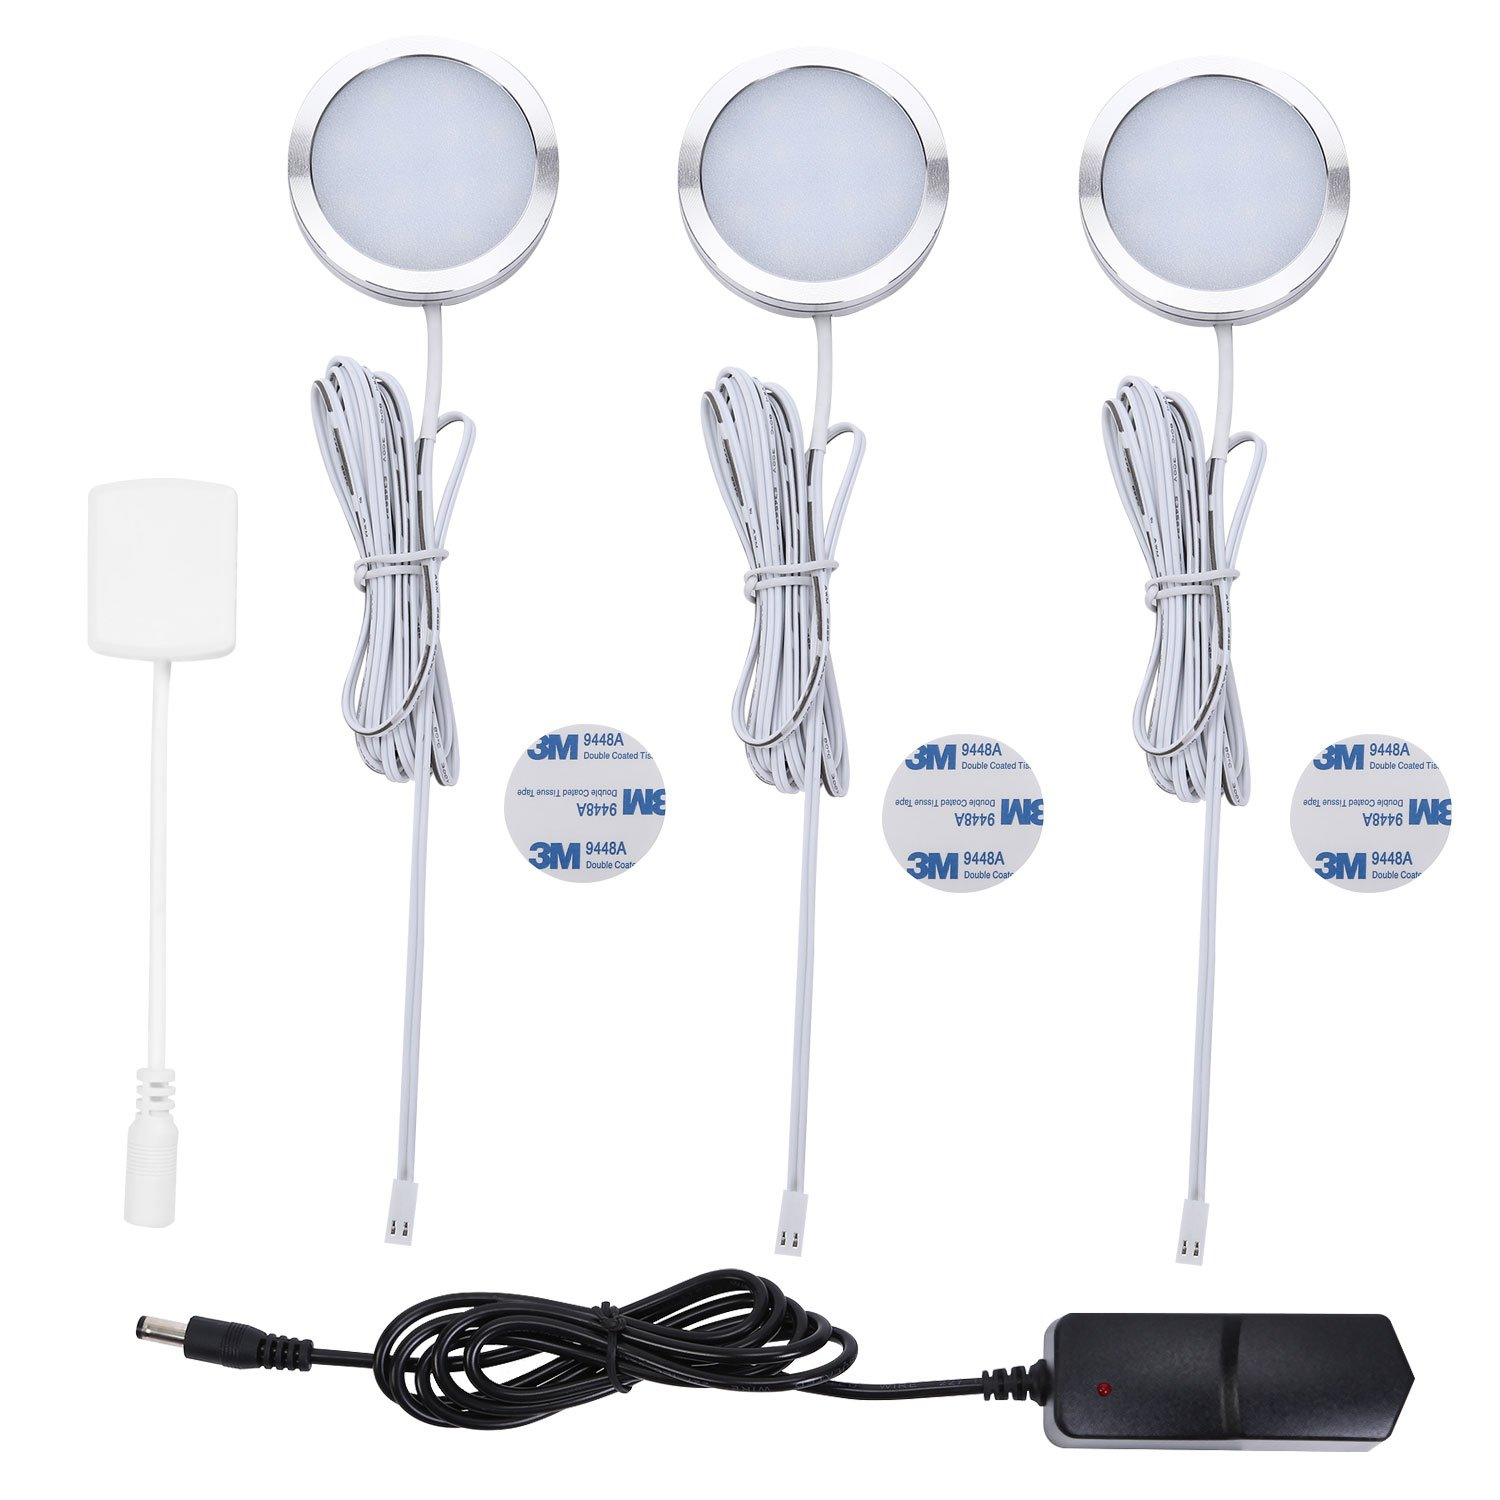 DIFEN LED Under Cabinet Lighting Kit, 750lm Puck Lights Under Counter Lighting, 4000K Nature White, All Accessories Included, Kitchen Lighting - Closet Light Set of 3